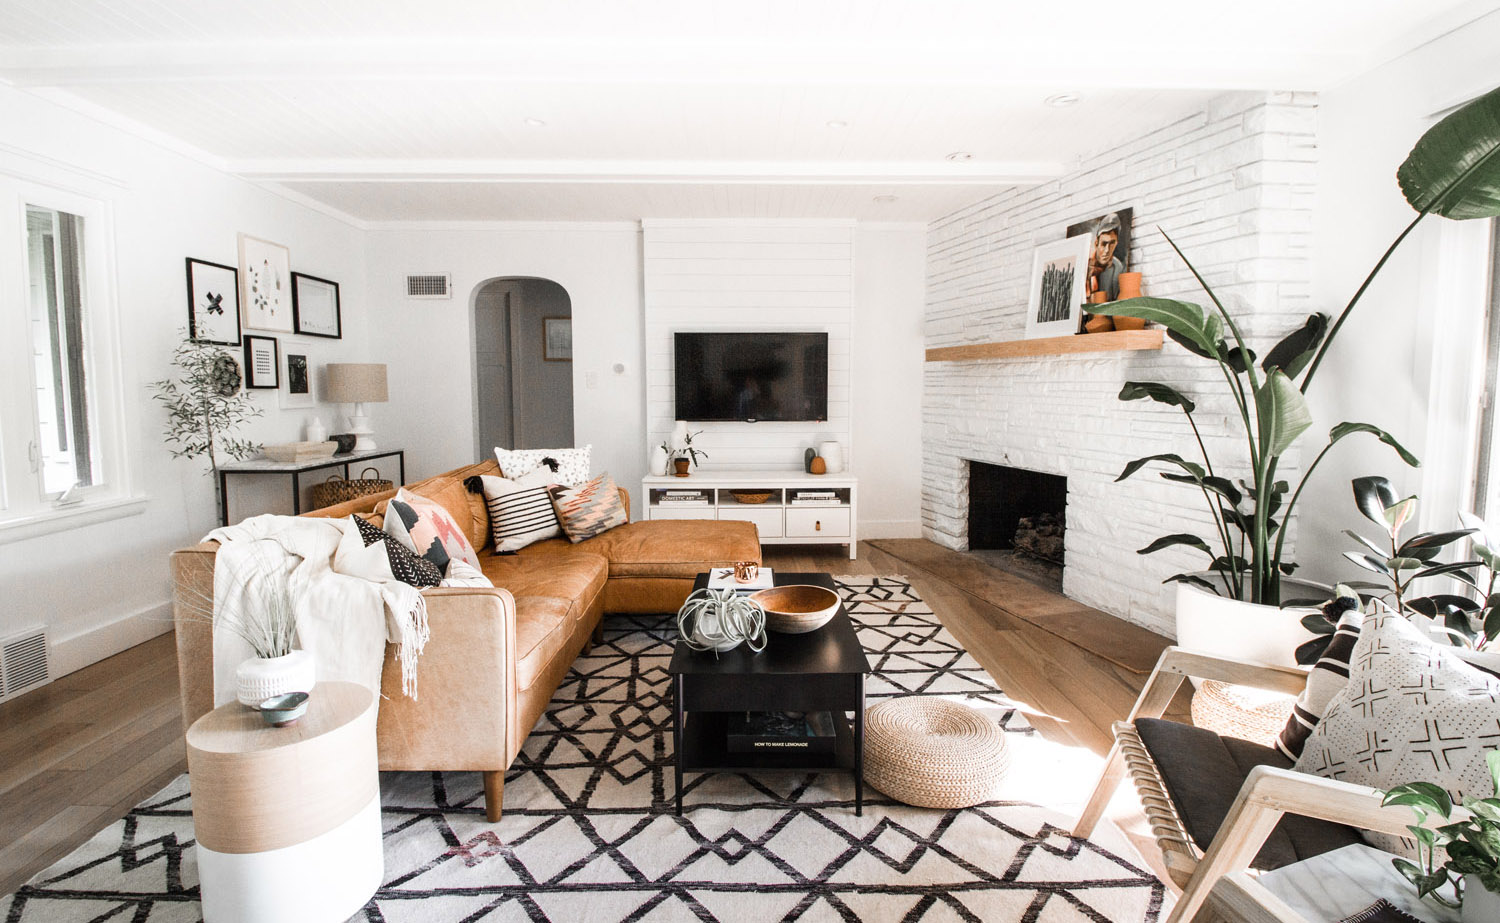 Imposing Lessons Learned From A Living Room Renovation Design Blog West Elm North Miami West Elm Miami Fl Estados Unidos houzz-03 West Elm Miami